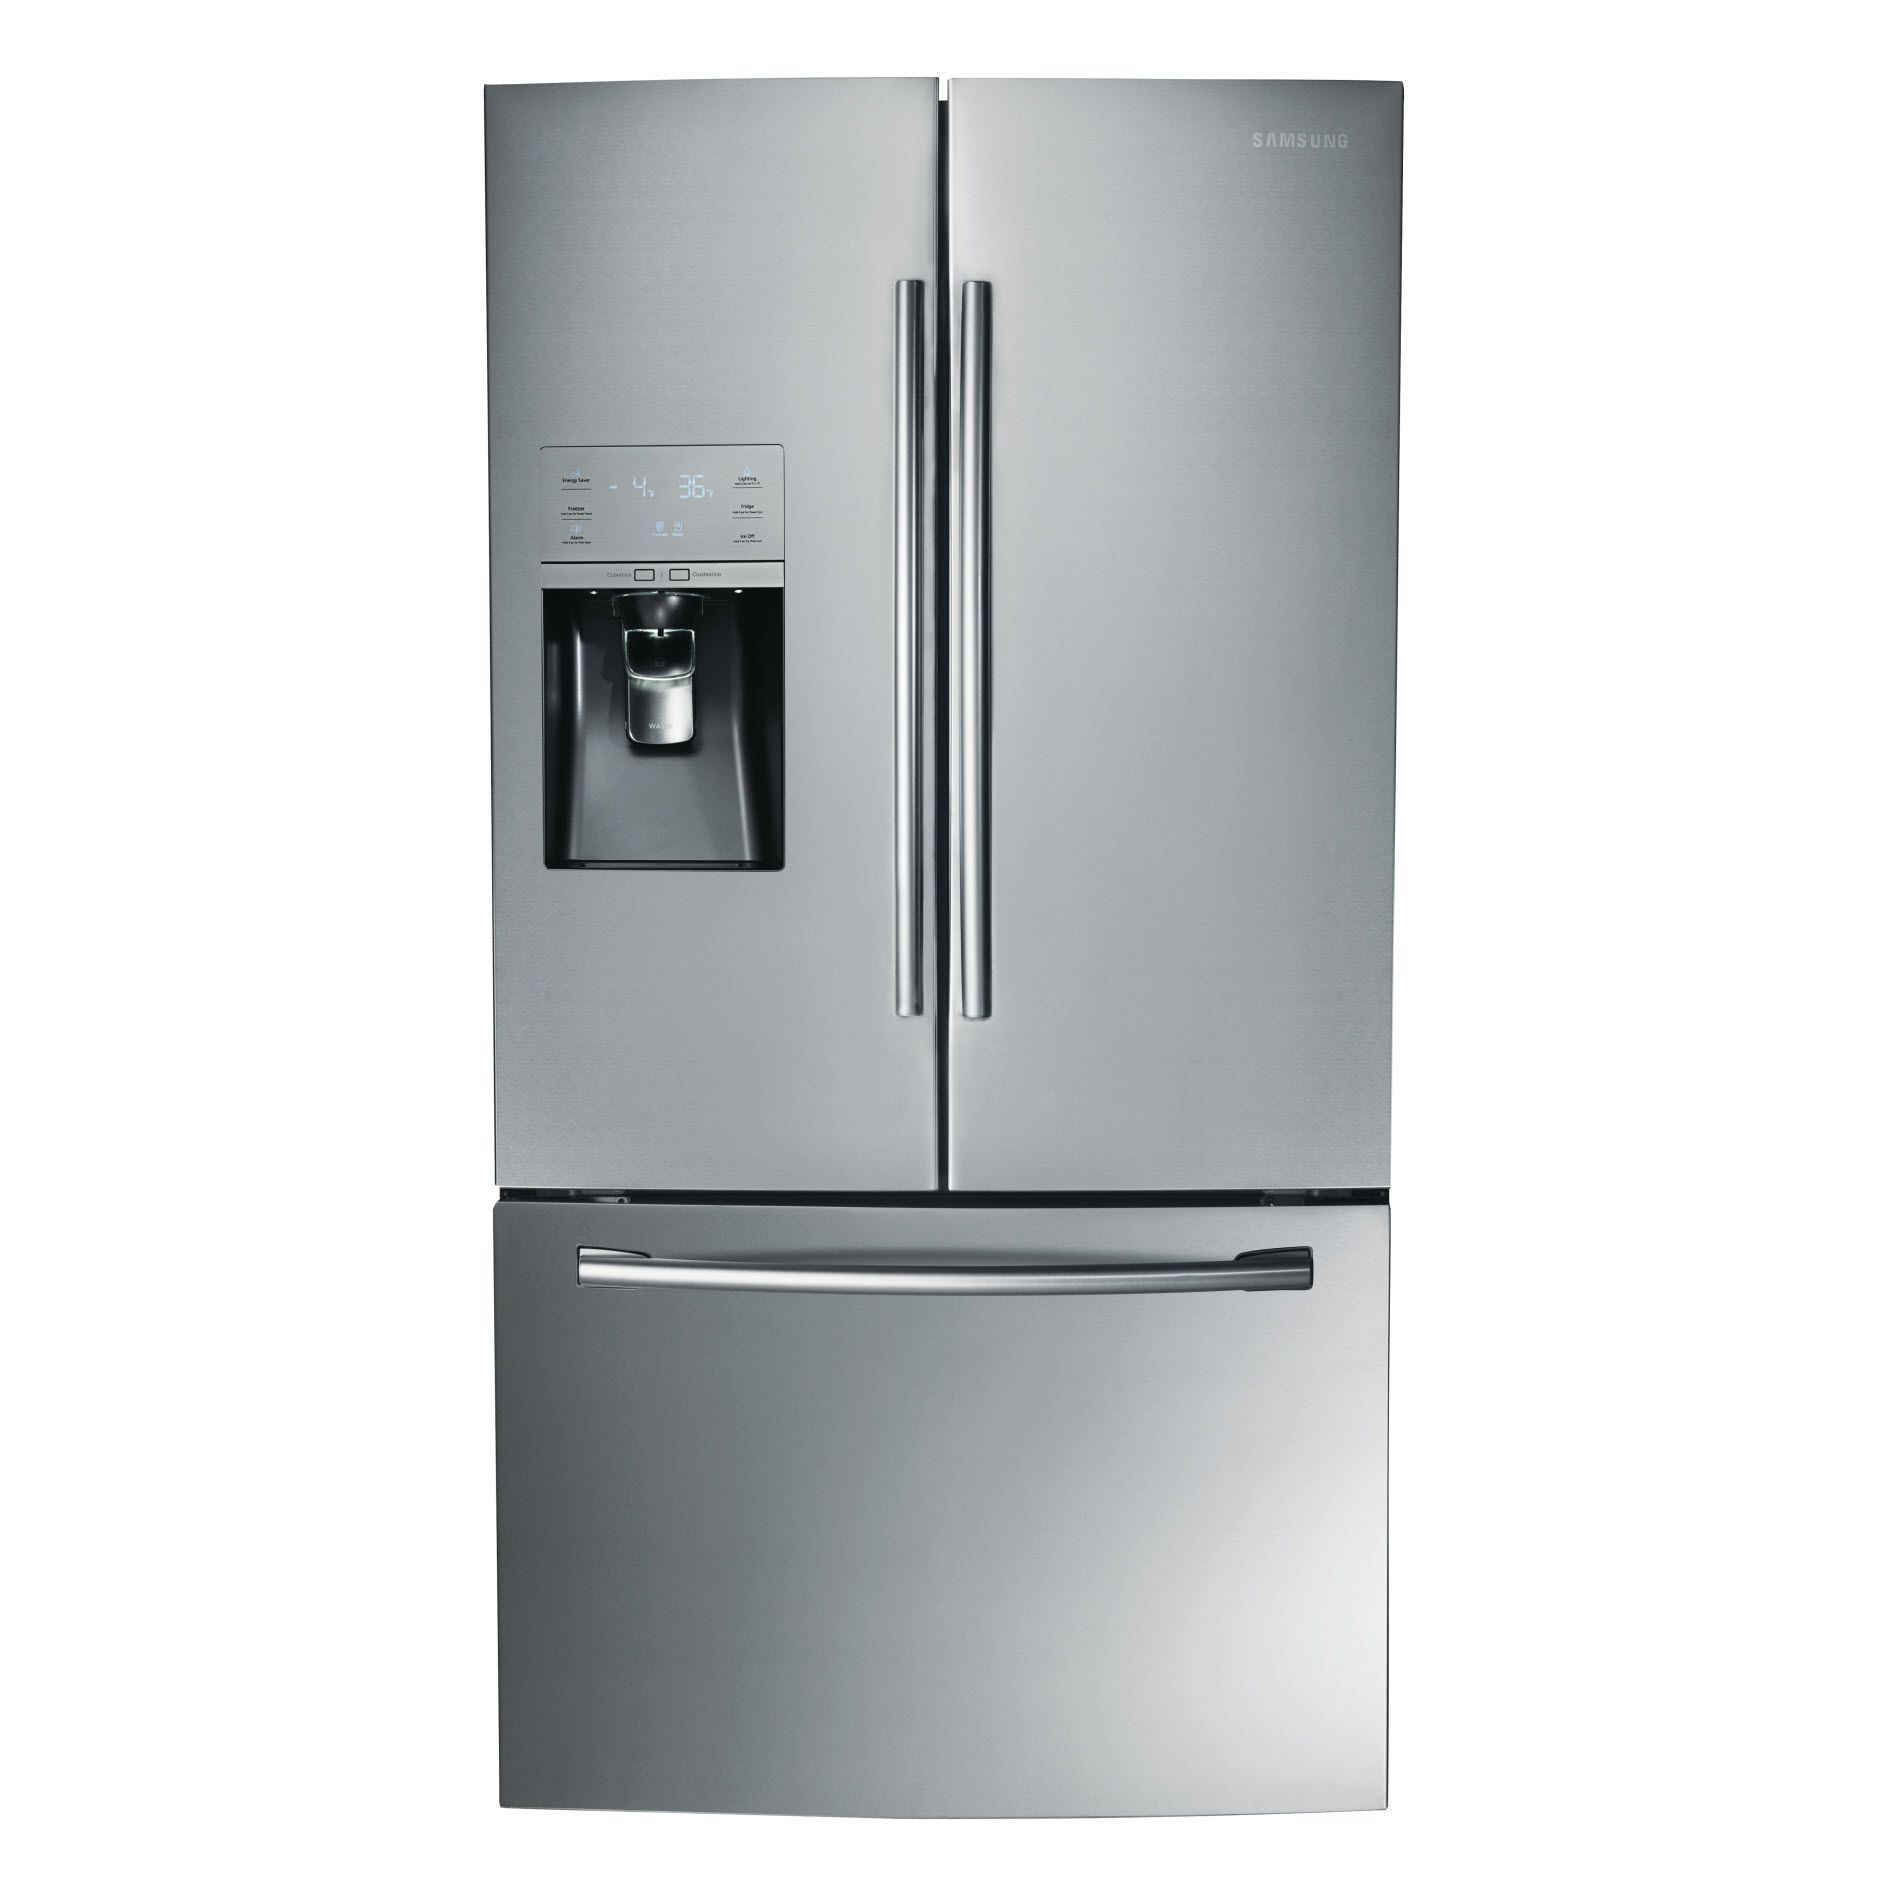 Samsung Rf323tedbsr 32 Cu Ft French Door Refrigerator Stainless Steel With Images Stainless Steel Refrigerator Samsung Refrigerator French Door Refrigerator Sale